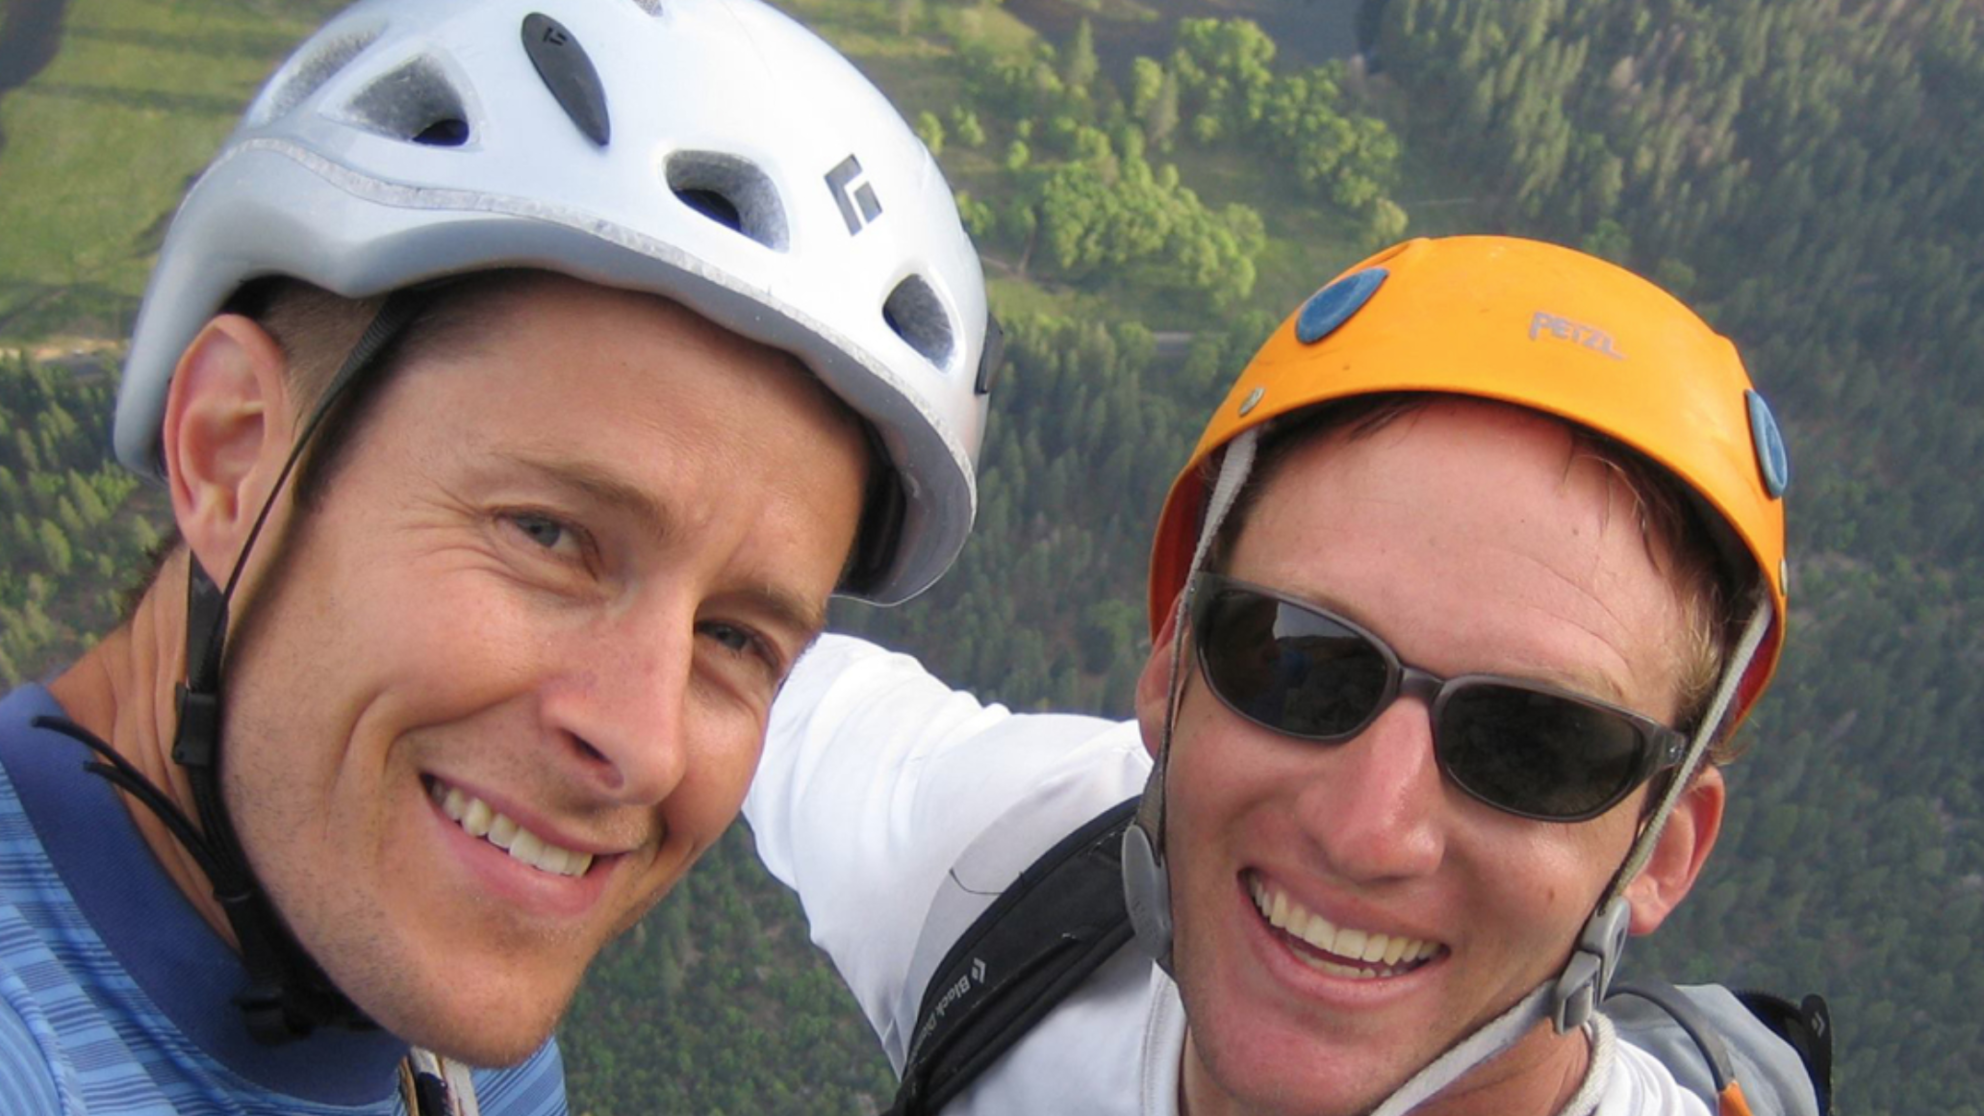 Best Friends Fall to Their Deaths While Rock Climbing in Yosemite National Park